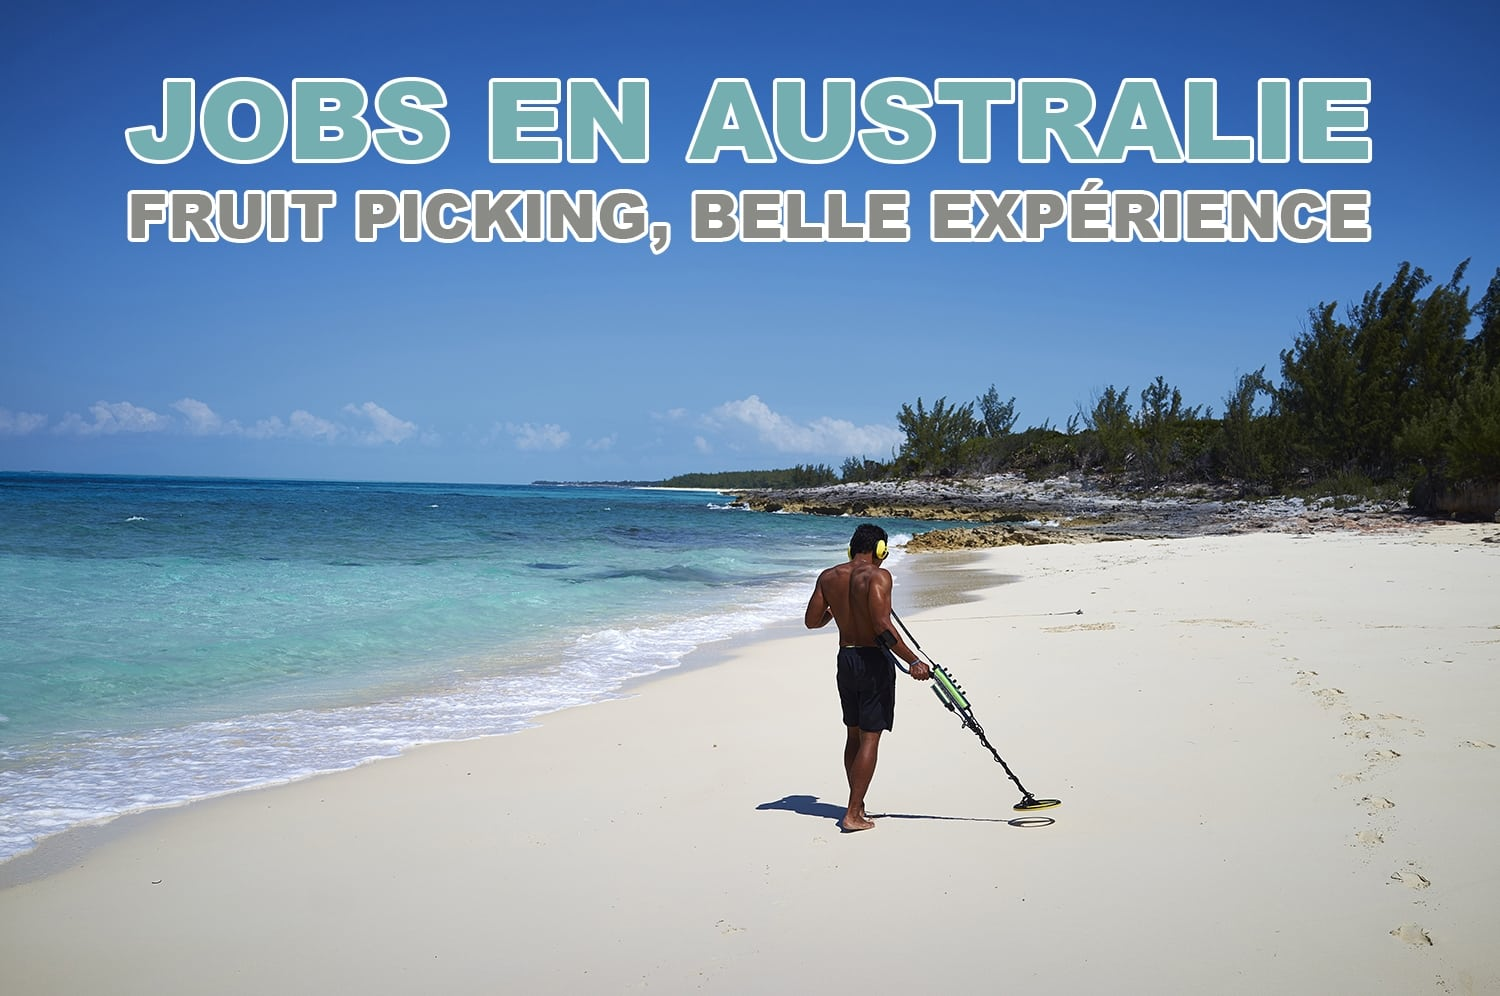 Jobs en Australie, fruit picking une belle exprience